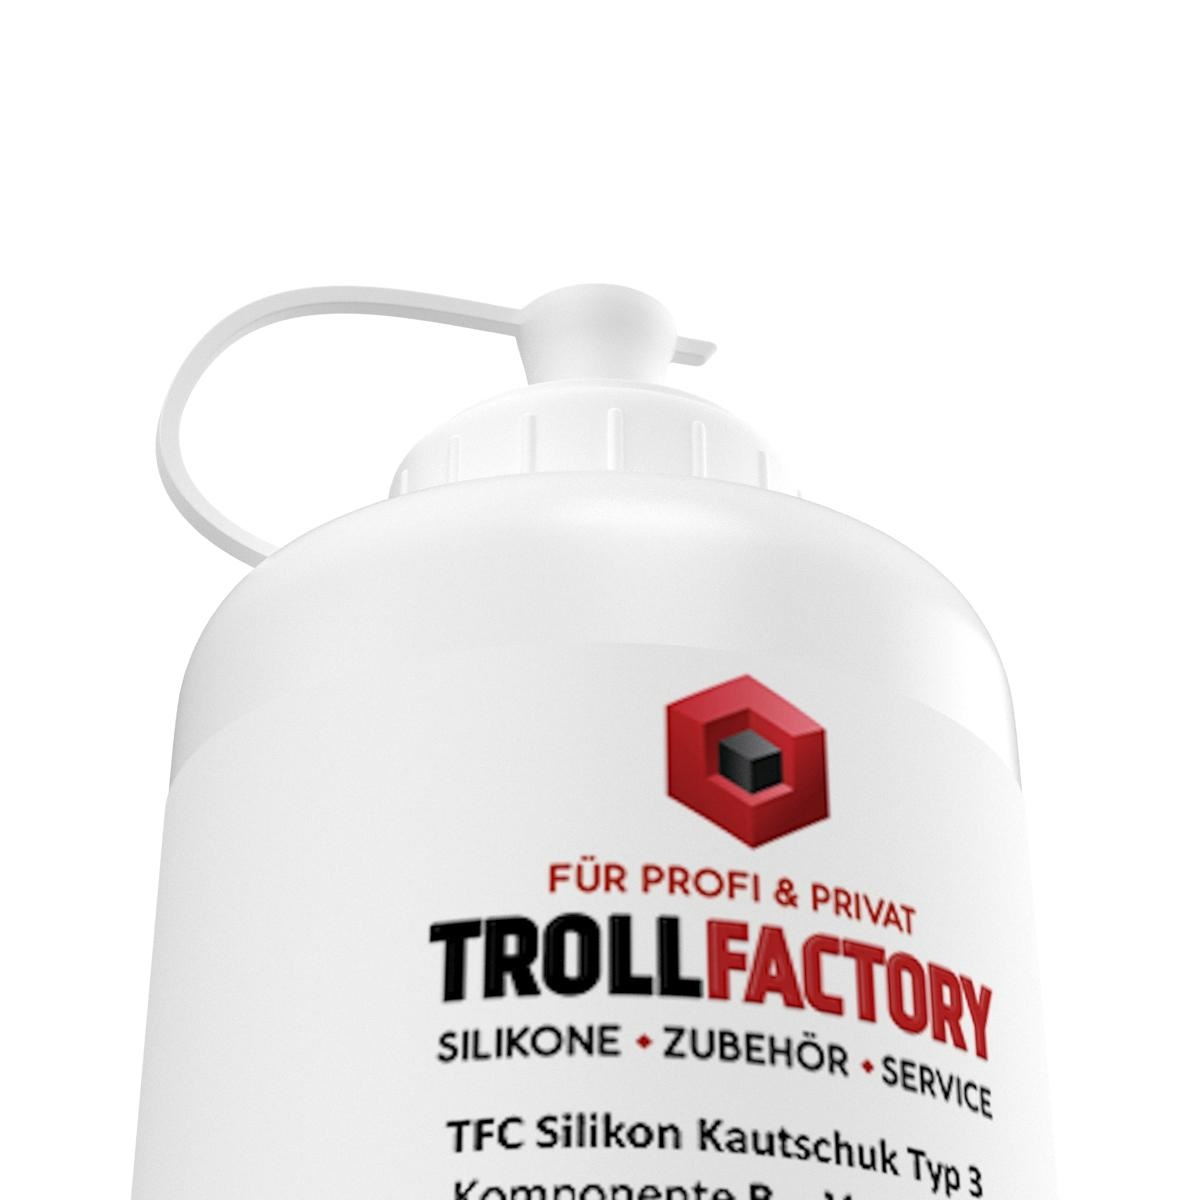 Troll Factory TFC Troll Factory Silicone Rubber Type 3 HB Tin hittebestendig 500g